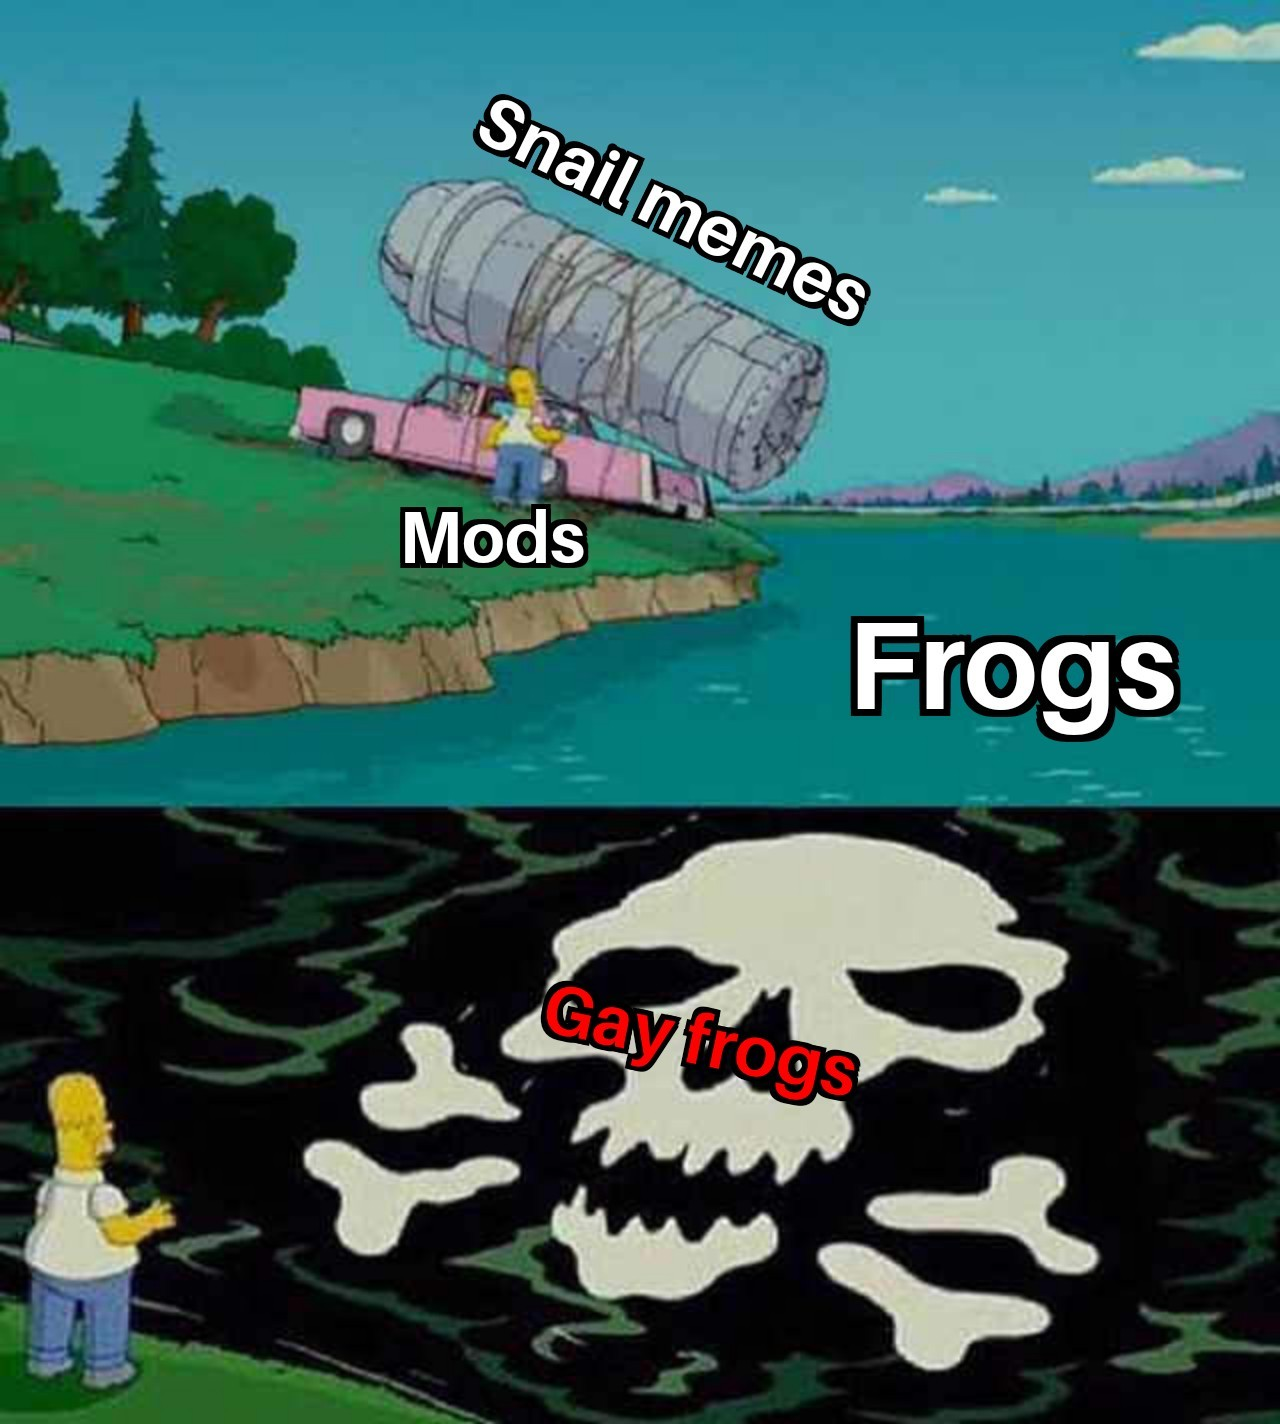 Mods are turning the frogs gay - meme